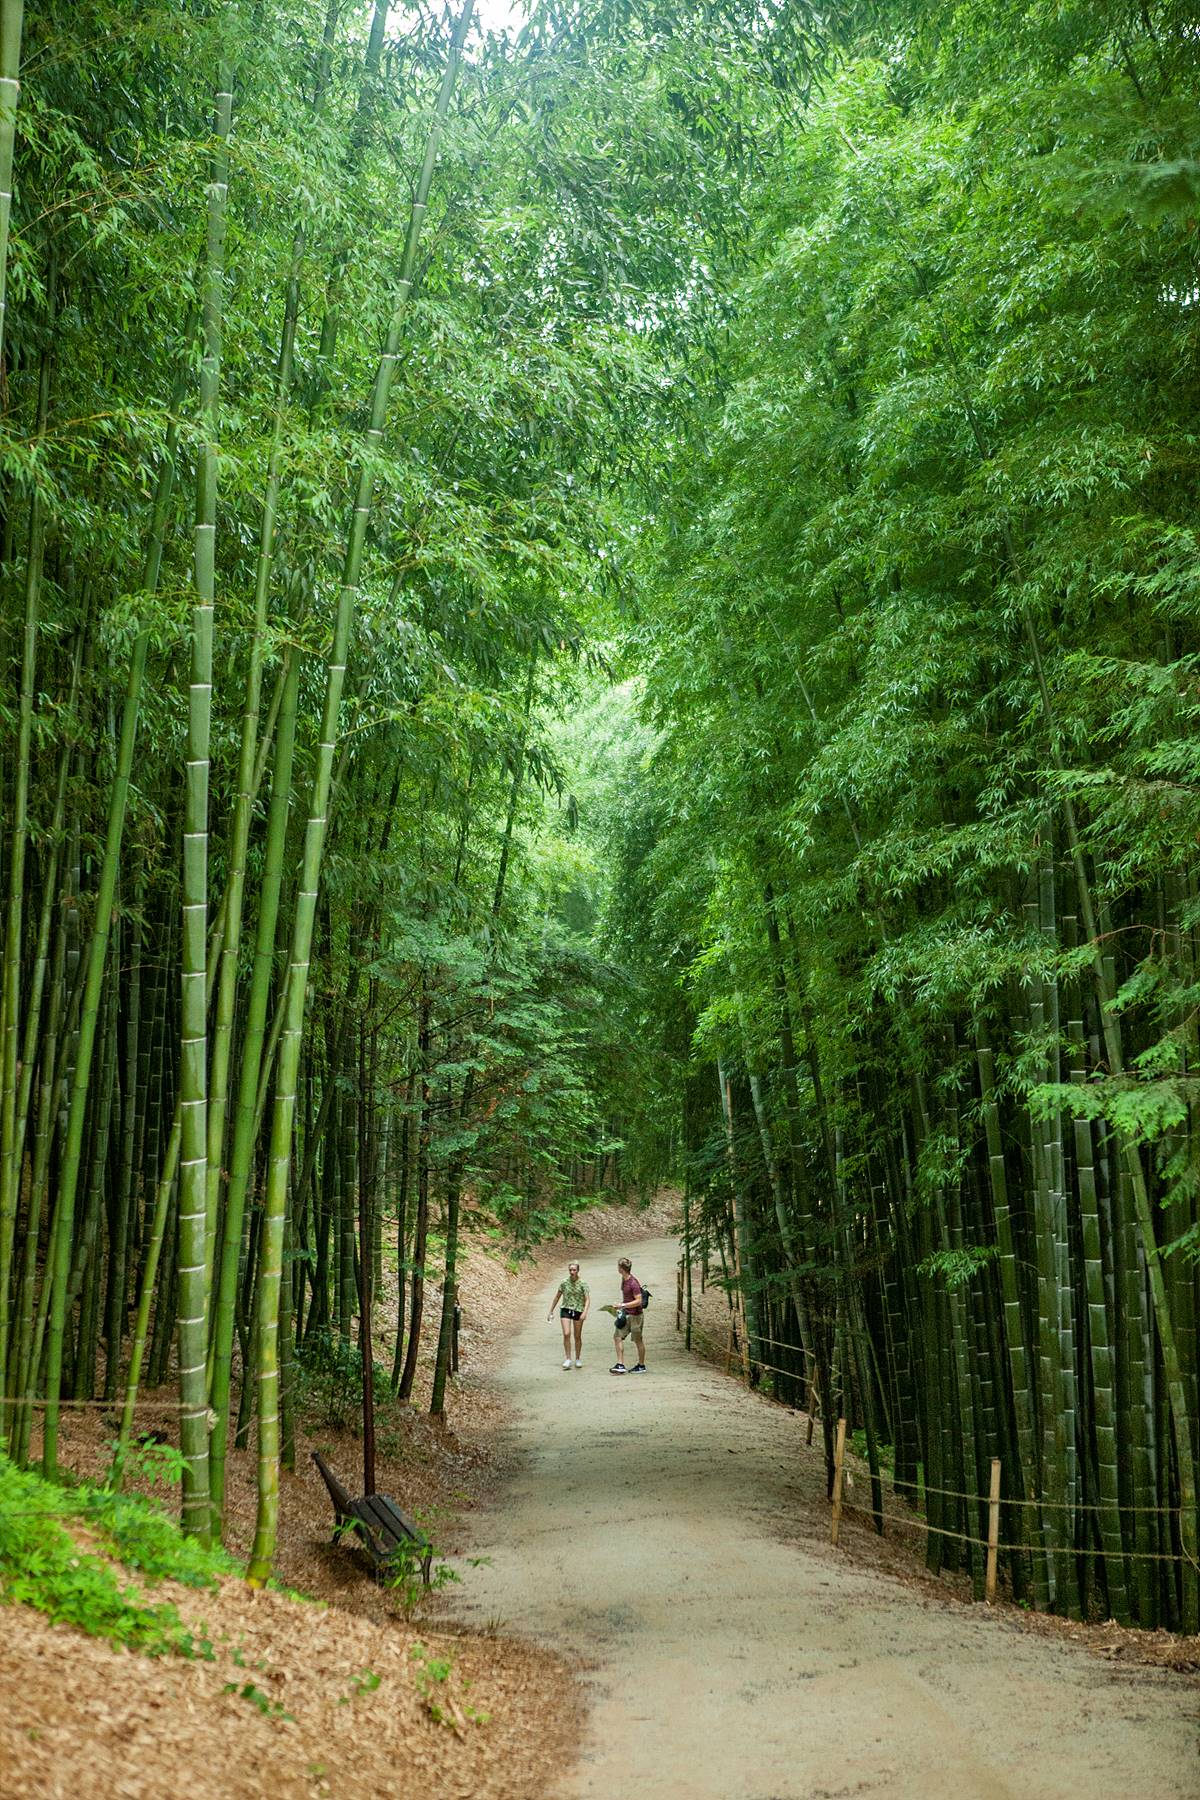 2.2 kilometers long to enjoy bamboo bathing